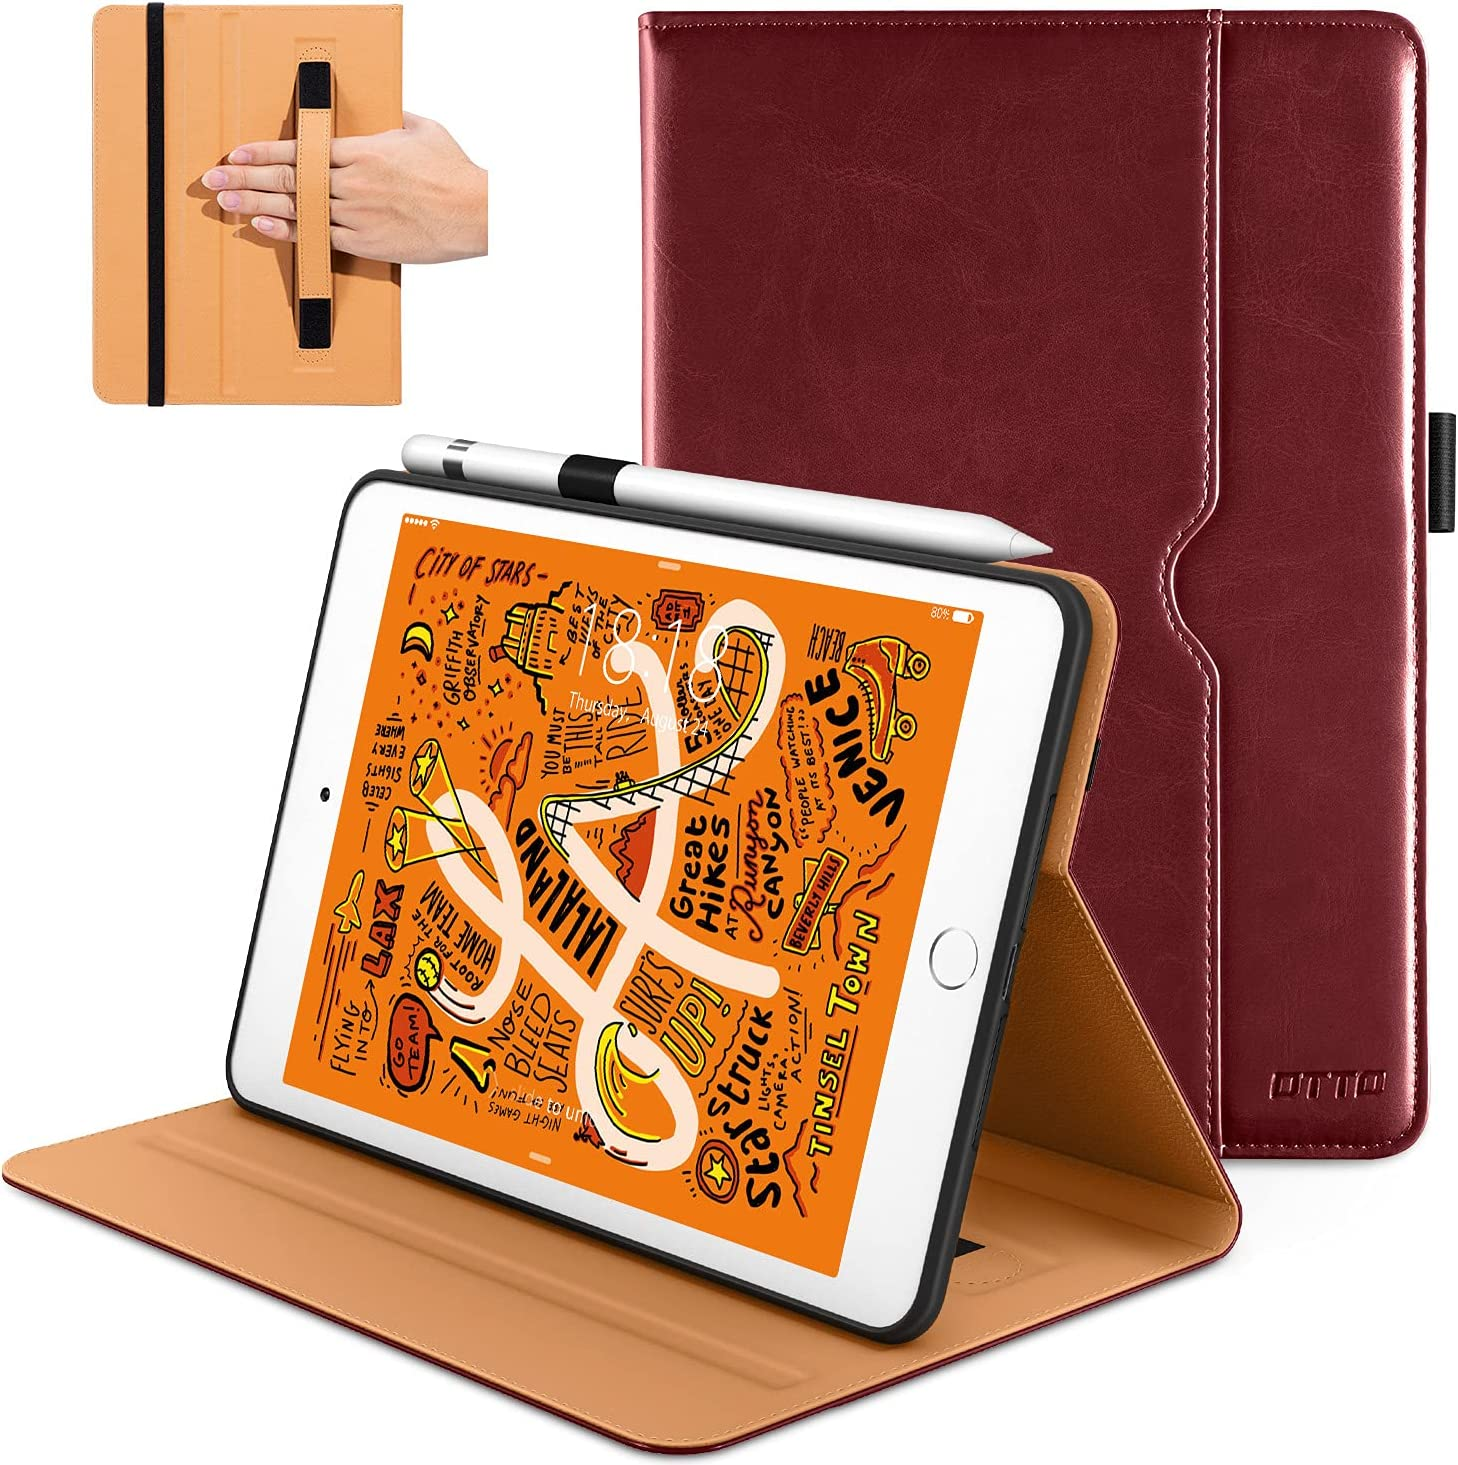 DTTO iPad Mini 5th Generation 2019 Case, [Noble Series] Leather Folio Cover Case with Apple Pencil Holder for iPad Mini 5 2019 [Auto Sleep/Wake],Burgundy Red